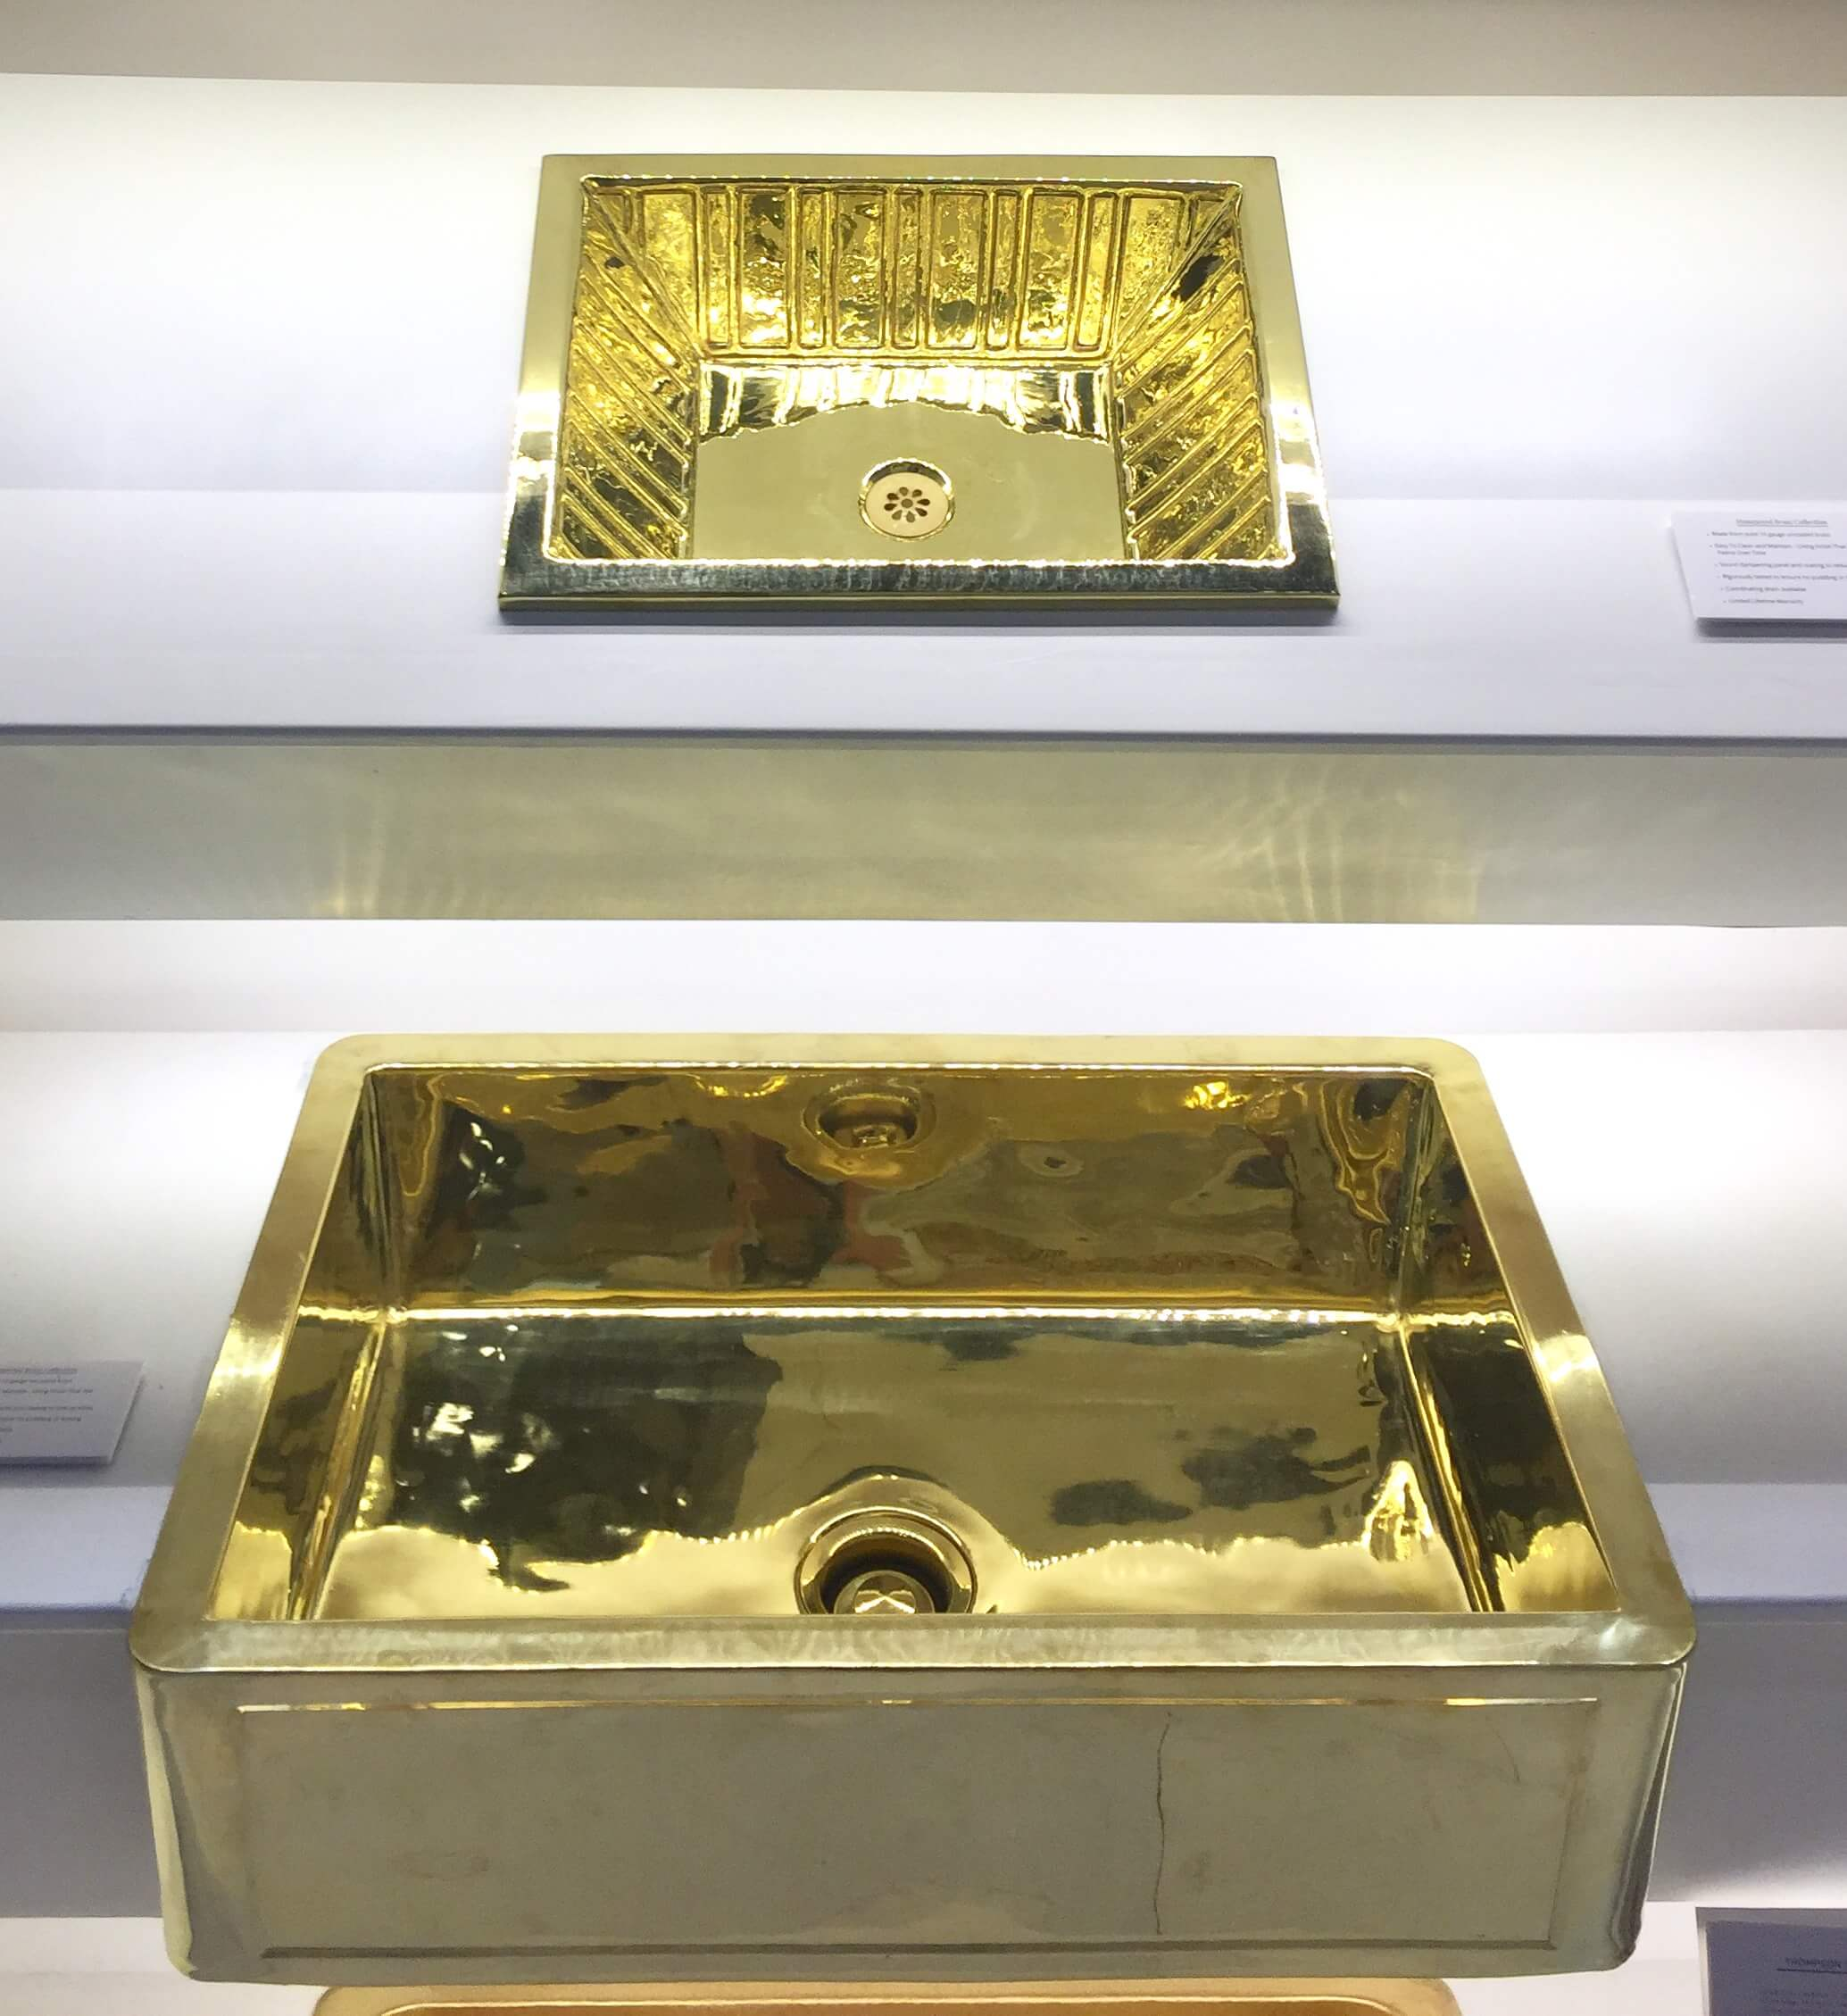 Polished brass sinks from Thompson Traders - KBIS, Kitchen and Bath Industry Show